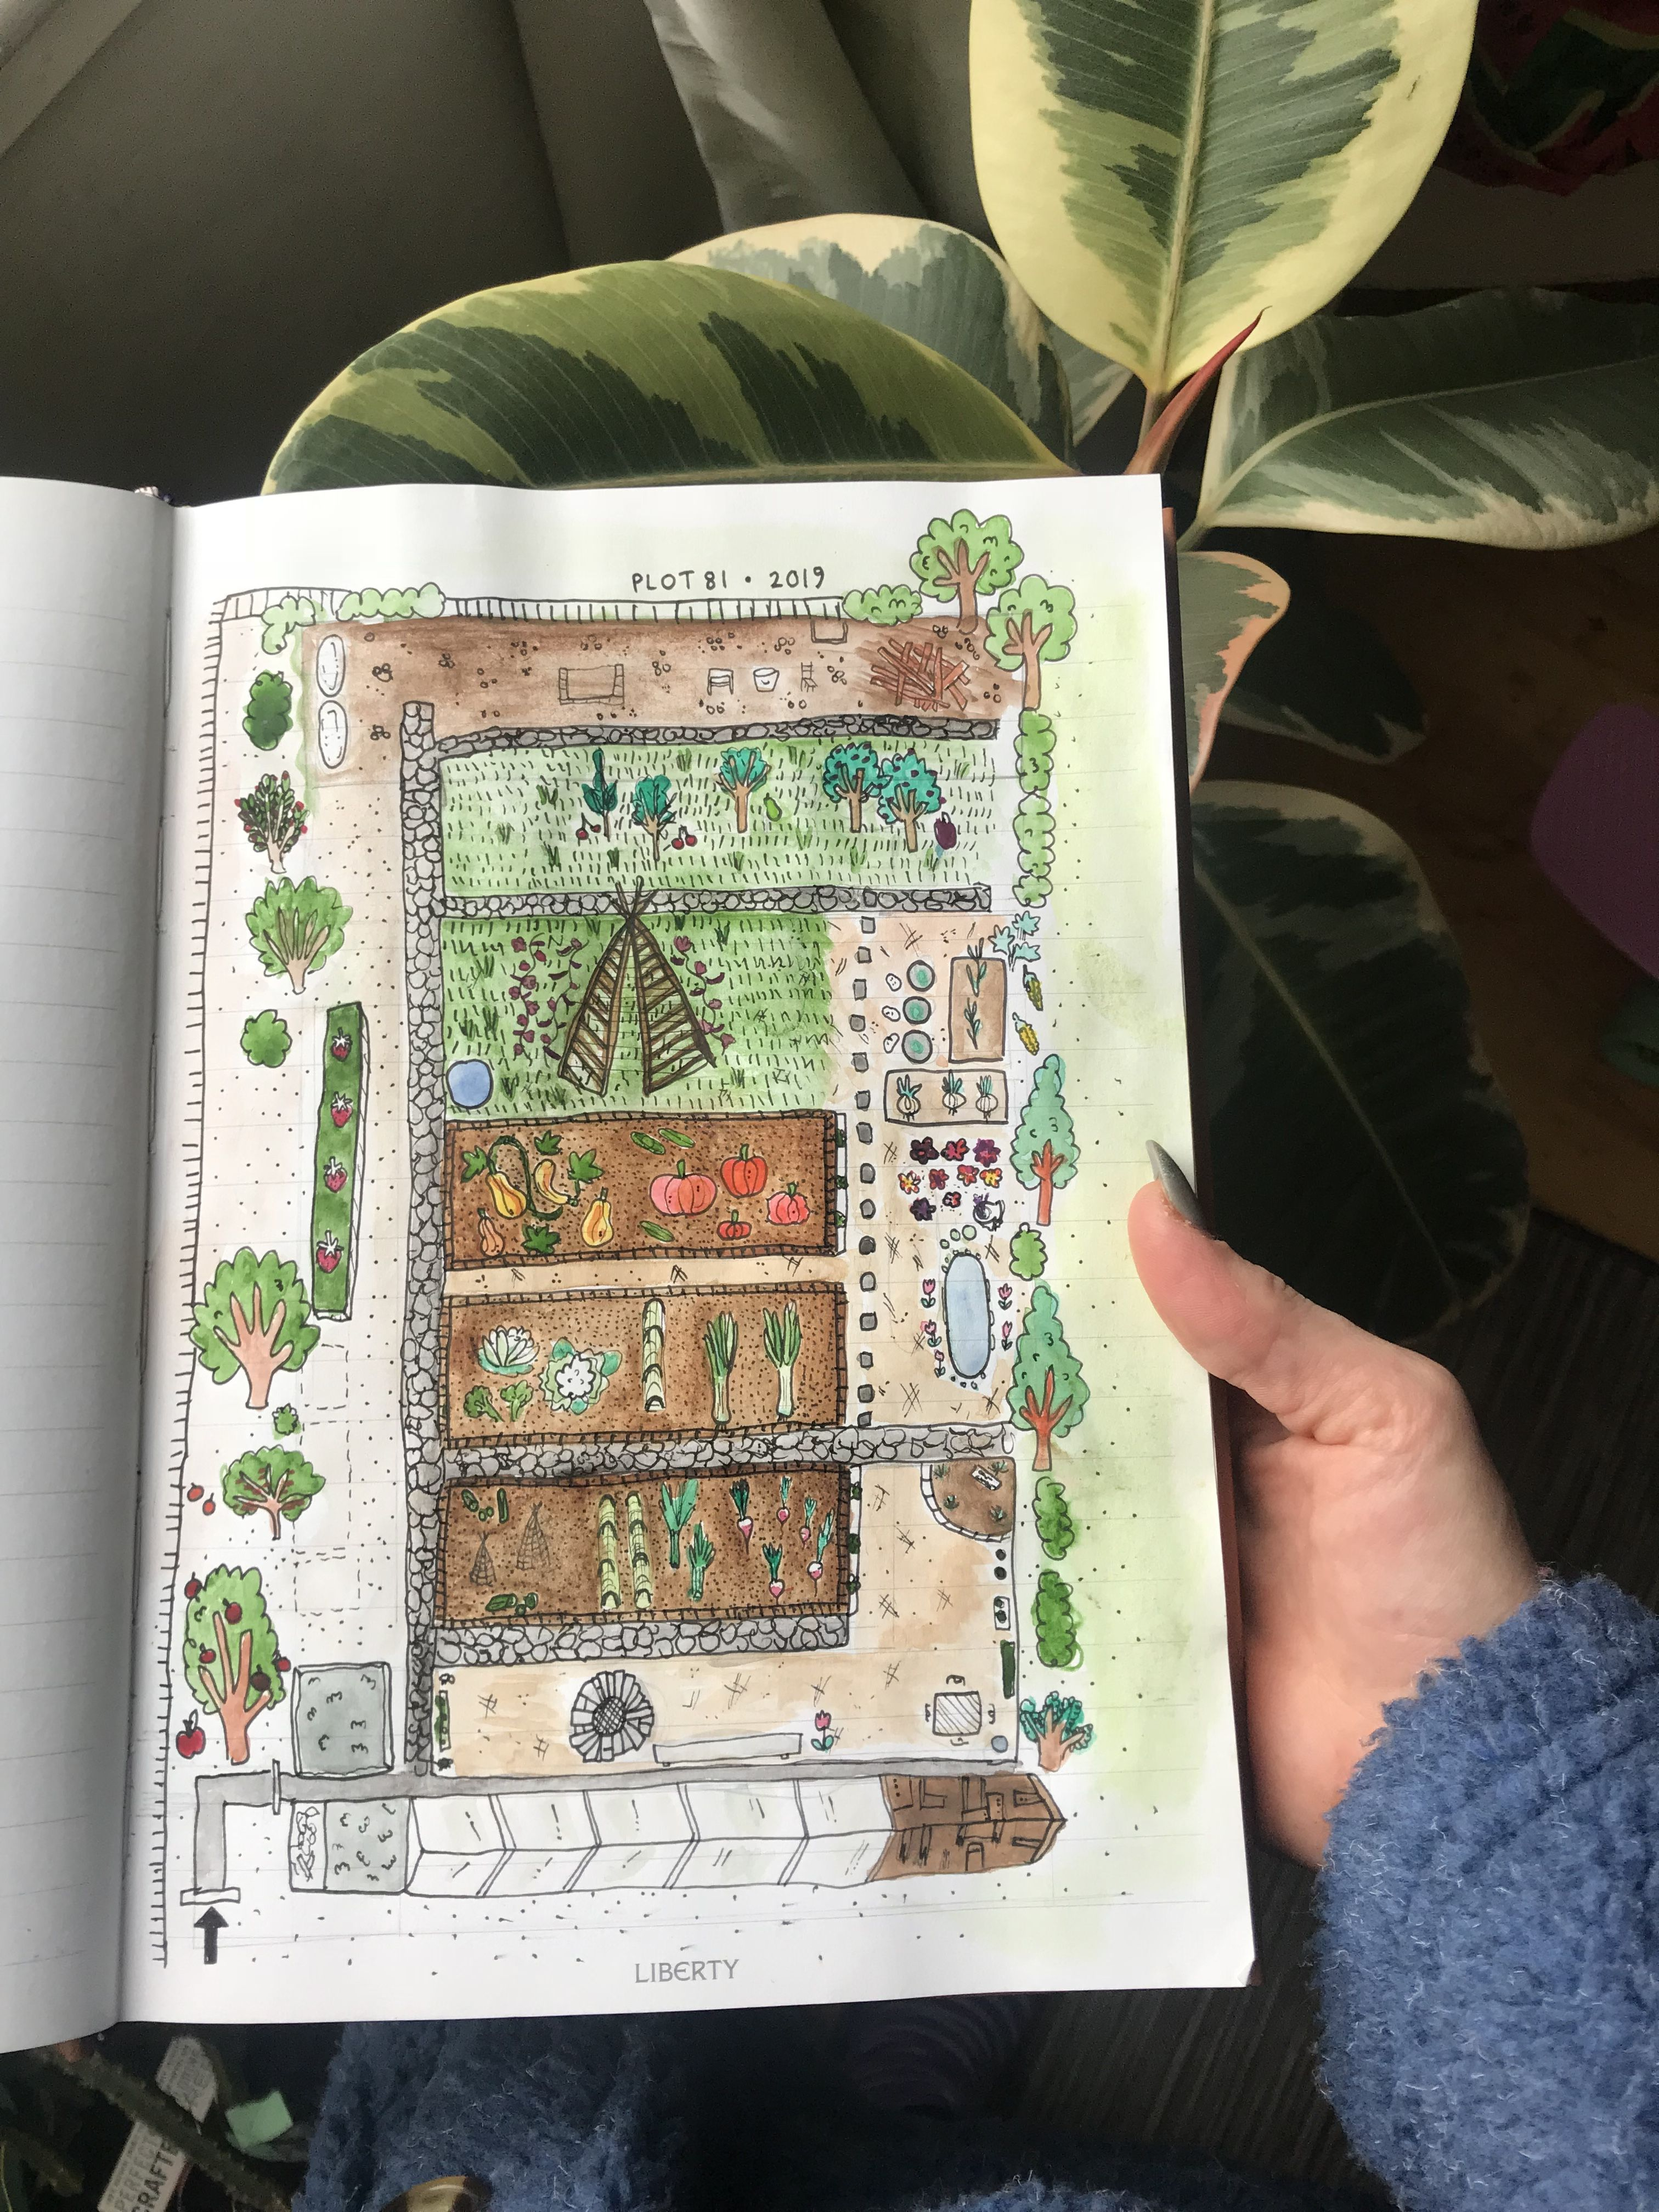 Allotment Plot Layout Plan For 2019 Watercolour Illustration